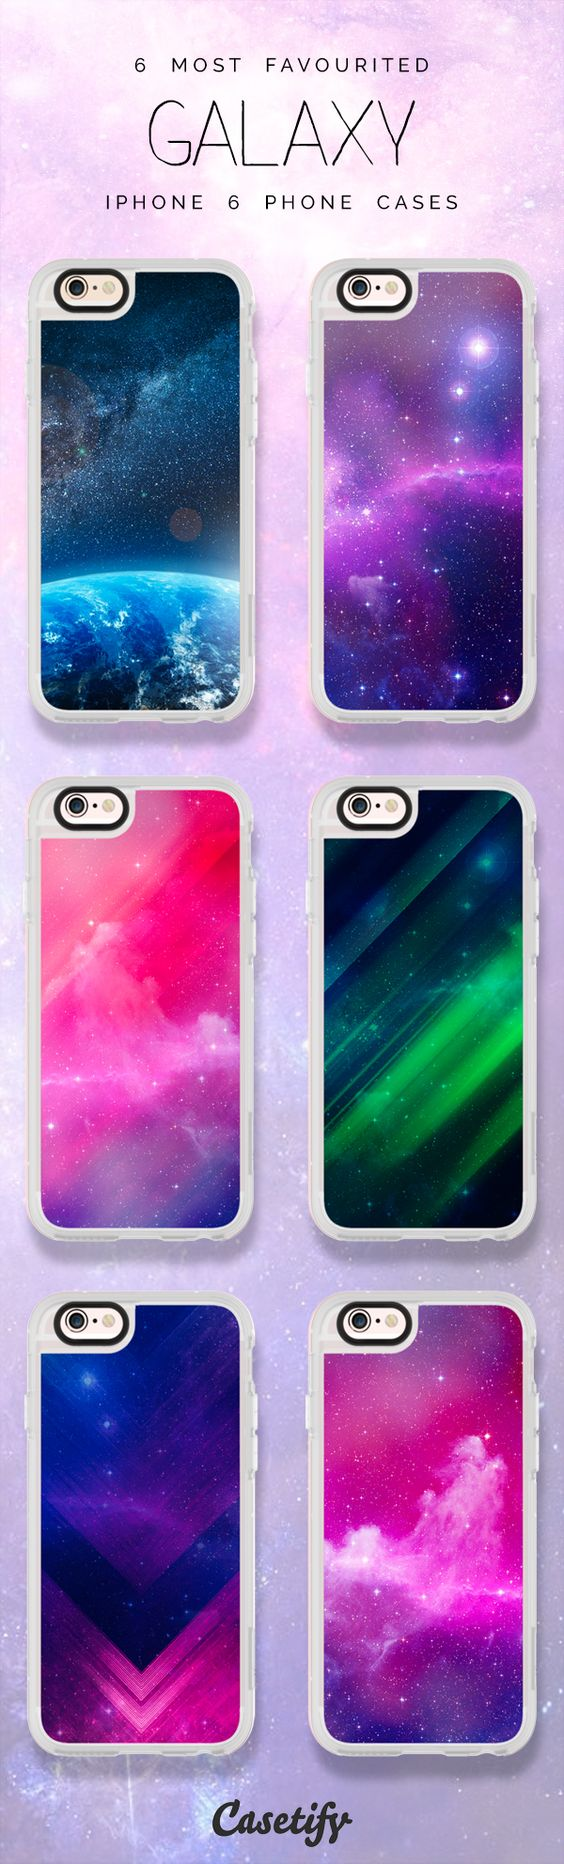 Top 6 Galaxy iPhone 6 protective phone case designs | Click through to see more iPhone phone case idea >>> https://www.casetify.com/artworks/IZ3X9JDk9O #space | @casetify